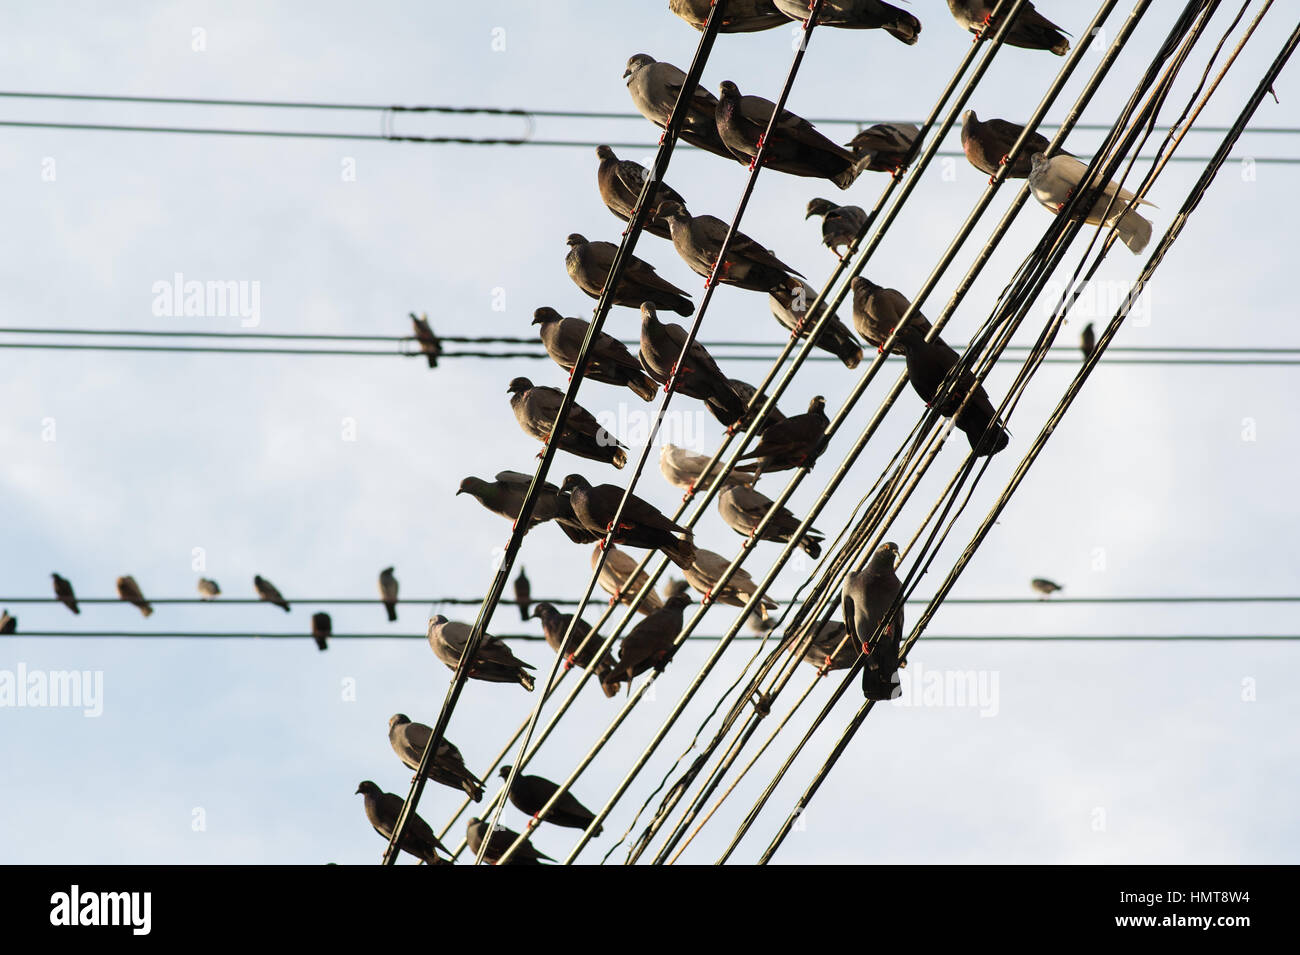 Electricity cables in Bangkok, Thailand - Stock Image